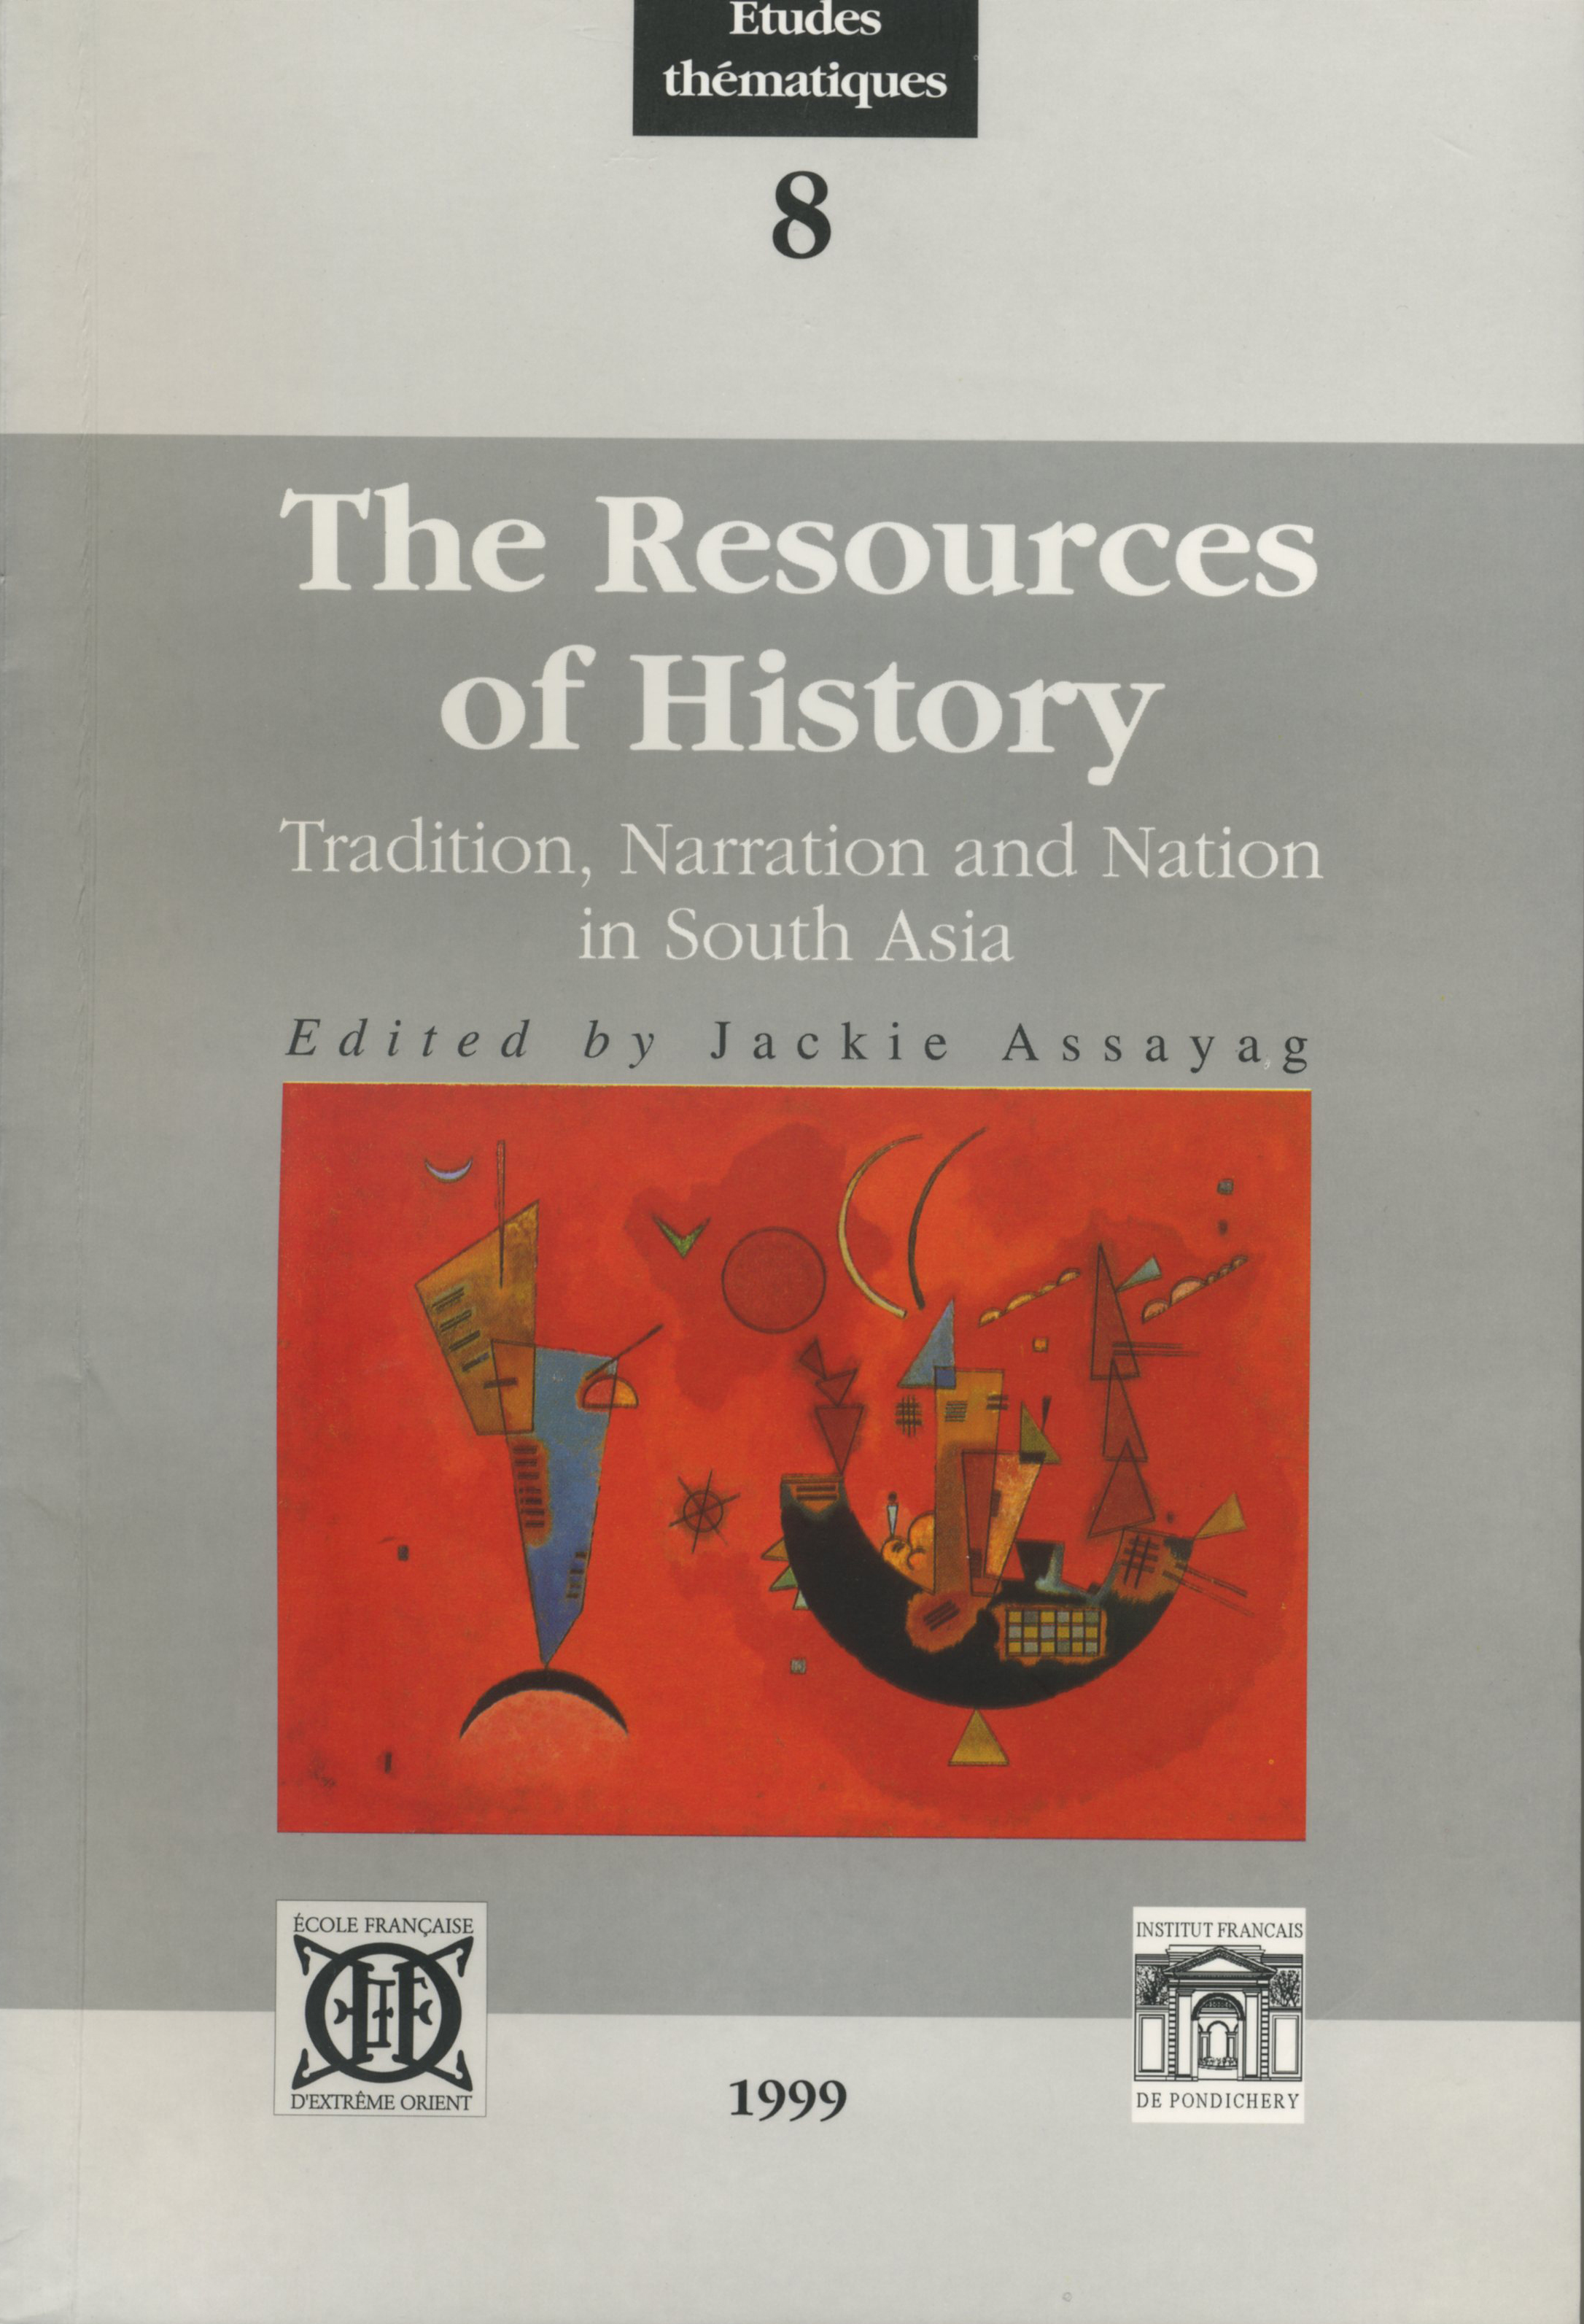 THE RESOURCES OF HISTORY. TRADITION, NARRATION AND NATION IN SOUTH ASIA